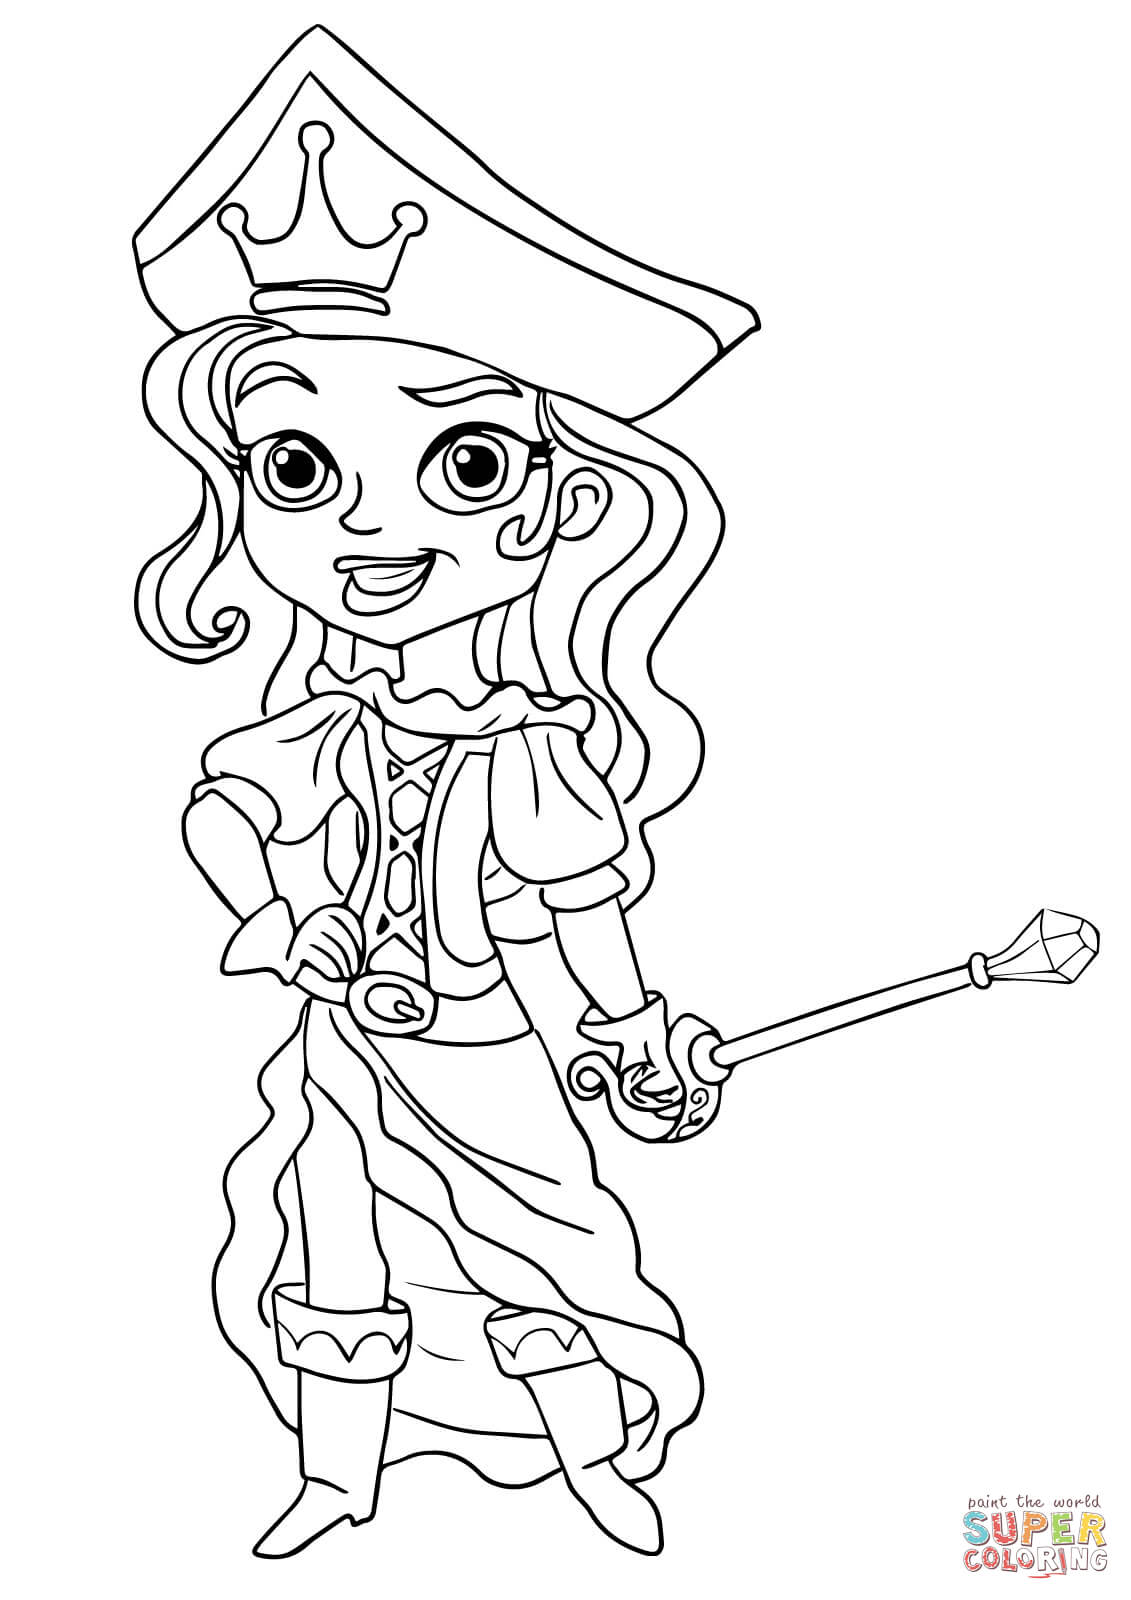 The Pirate Princess Coloring Page